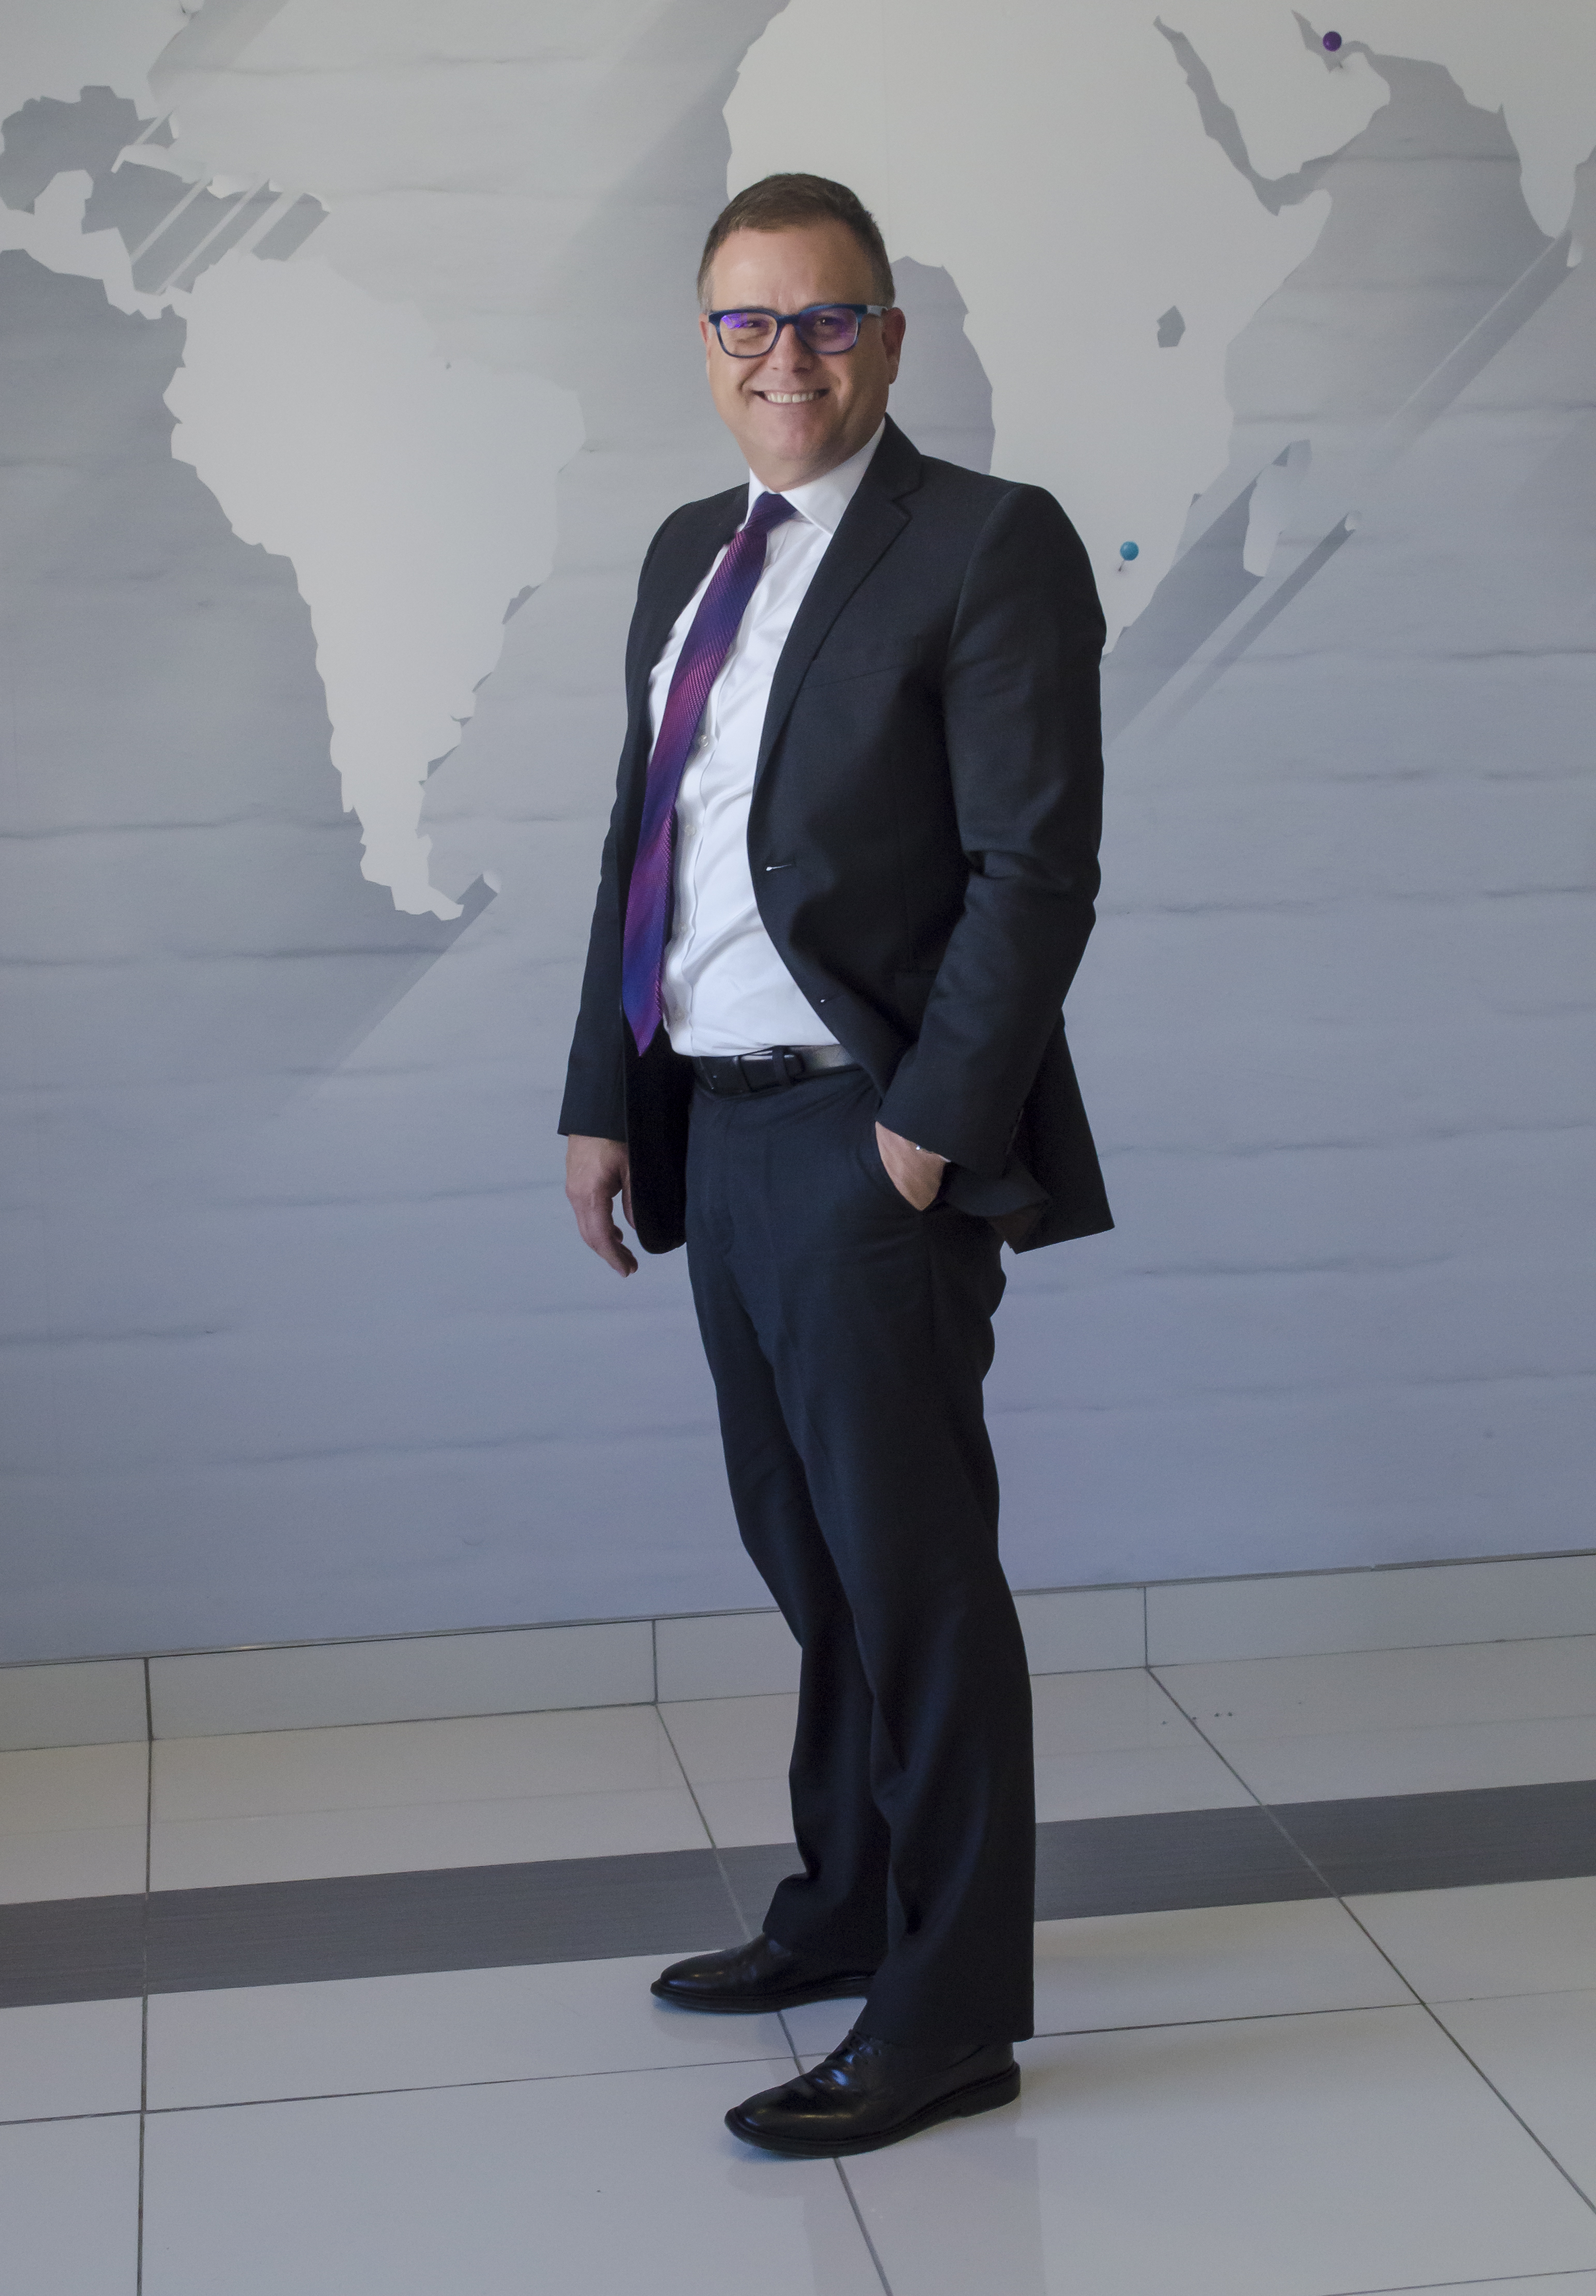 Craig Beney, joint CEO of newly established Helical Capital Partners